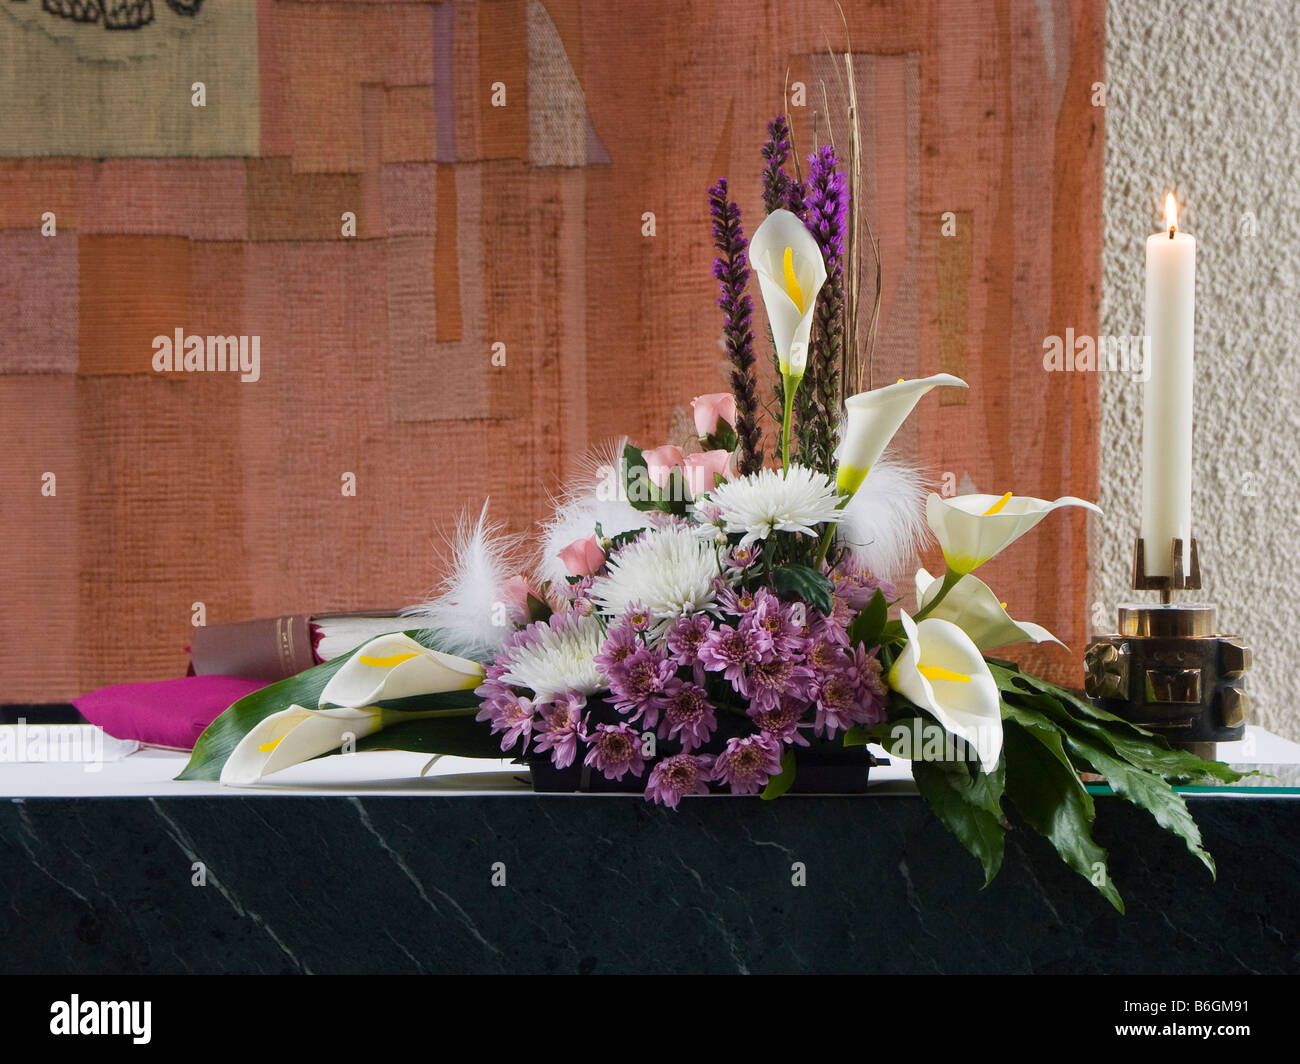 Altar Flowers And Candle On A Modern Church Altar Stock Photo Alamy